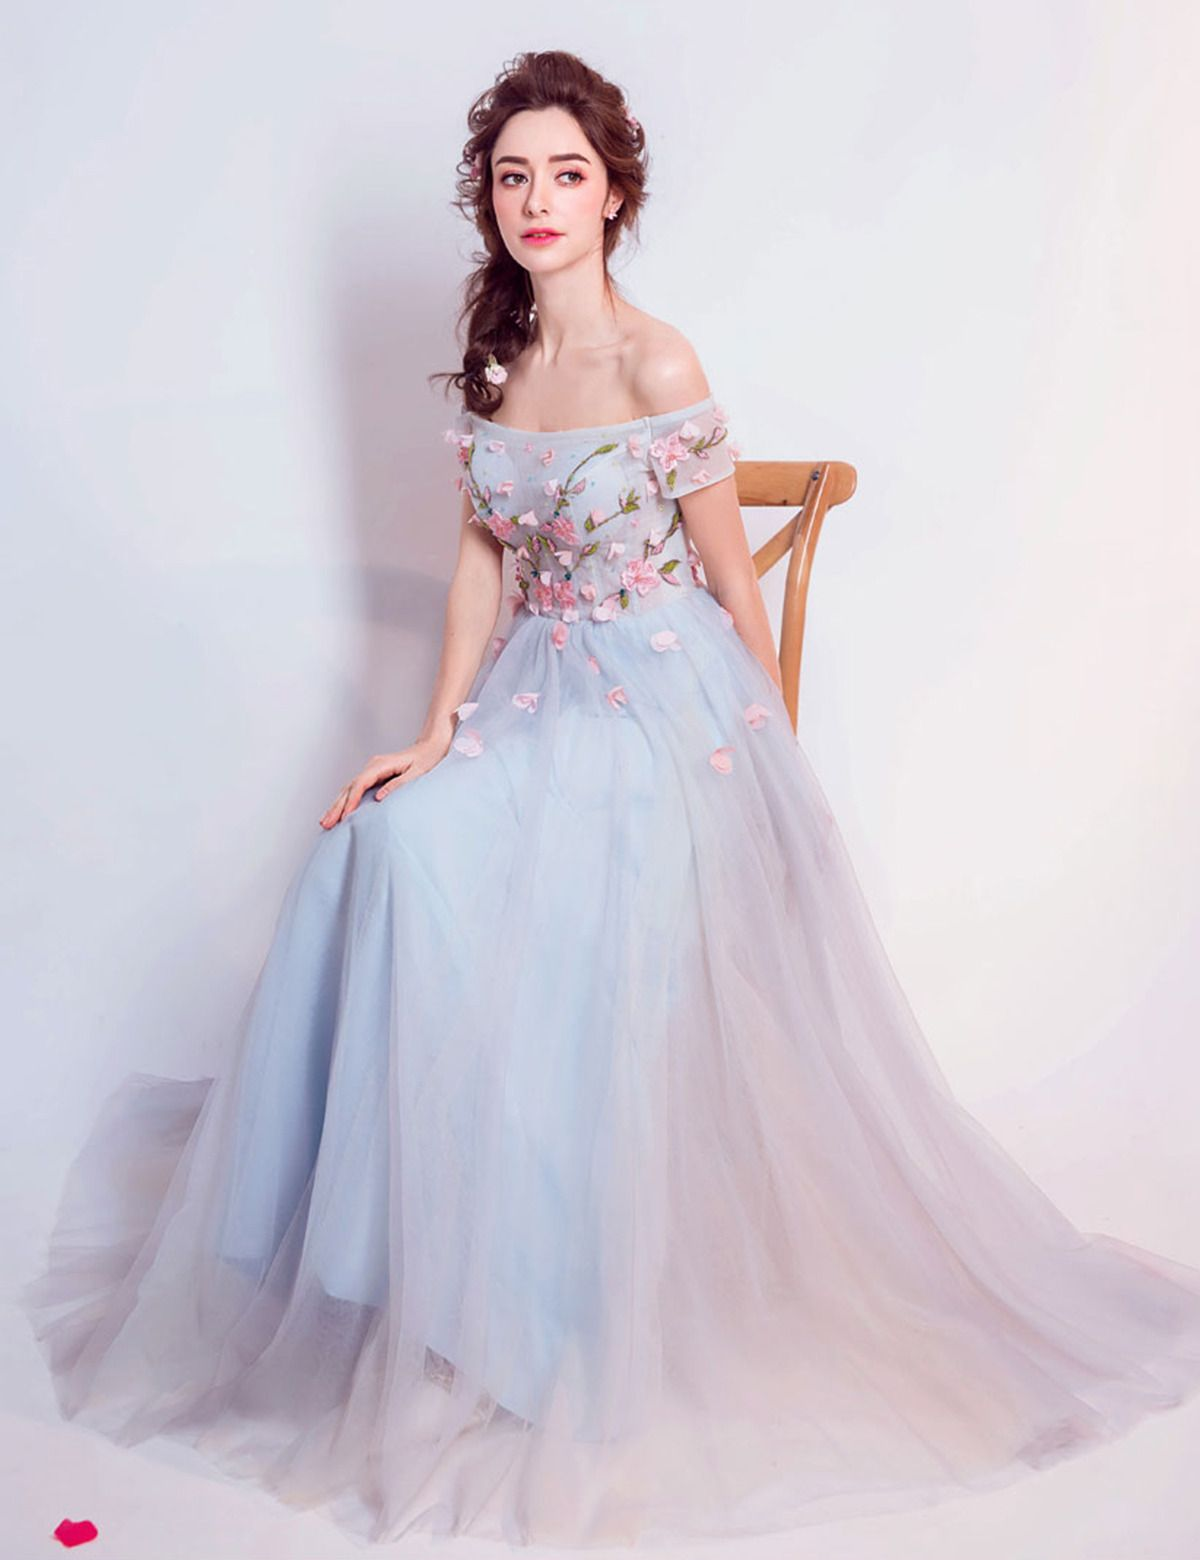 Beautiful Blue Tulle Off Shoulder Prom Gown Ball Dress Princess Prom Dresses Vintage Style Prom Dresses Formal Dresses [ 1560 x 1200 Pixel ]